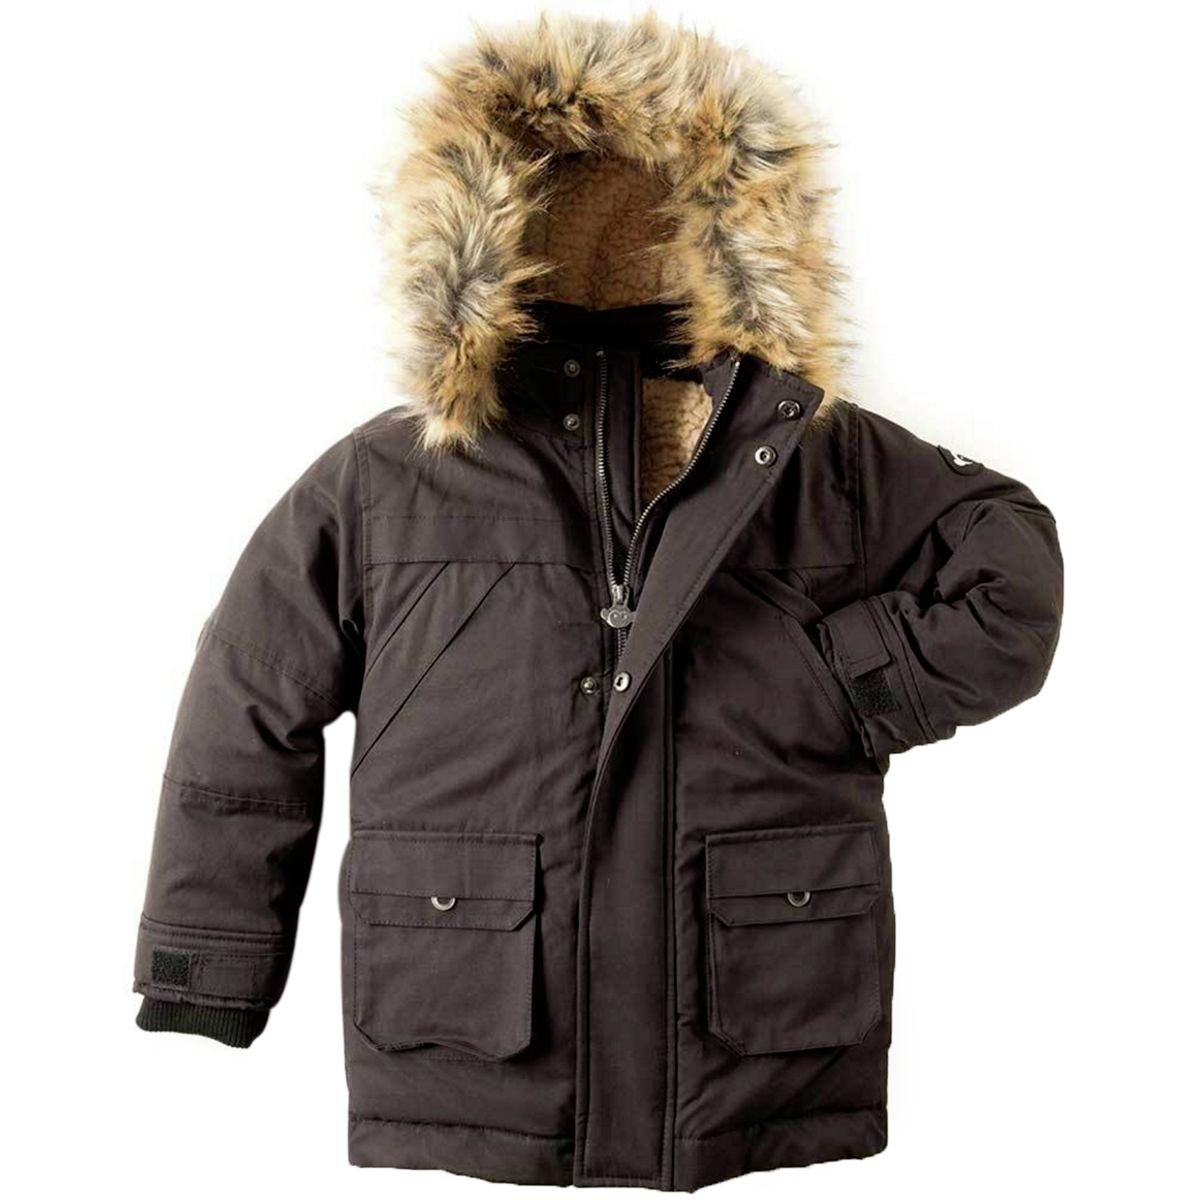 Appaman Kids  Baby Boy's Denali Down Coat (Toddler/Little Kids/Big Kids) Black 12